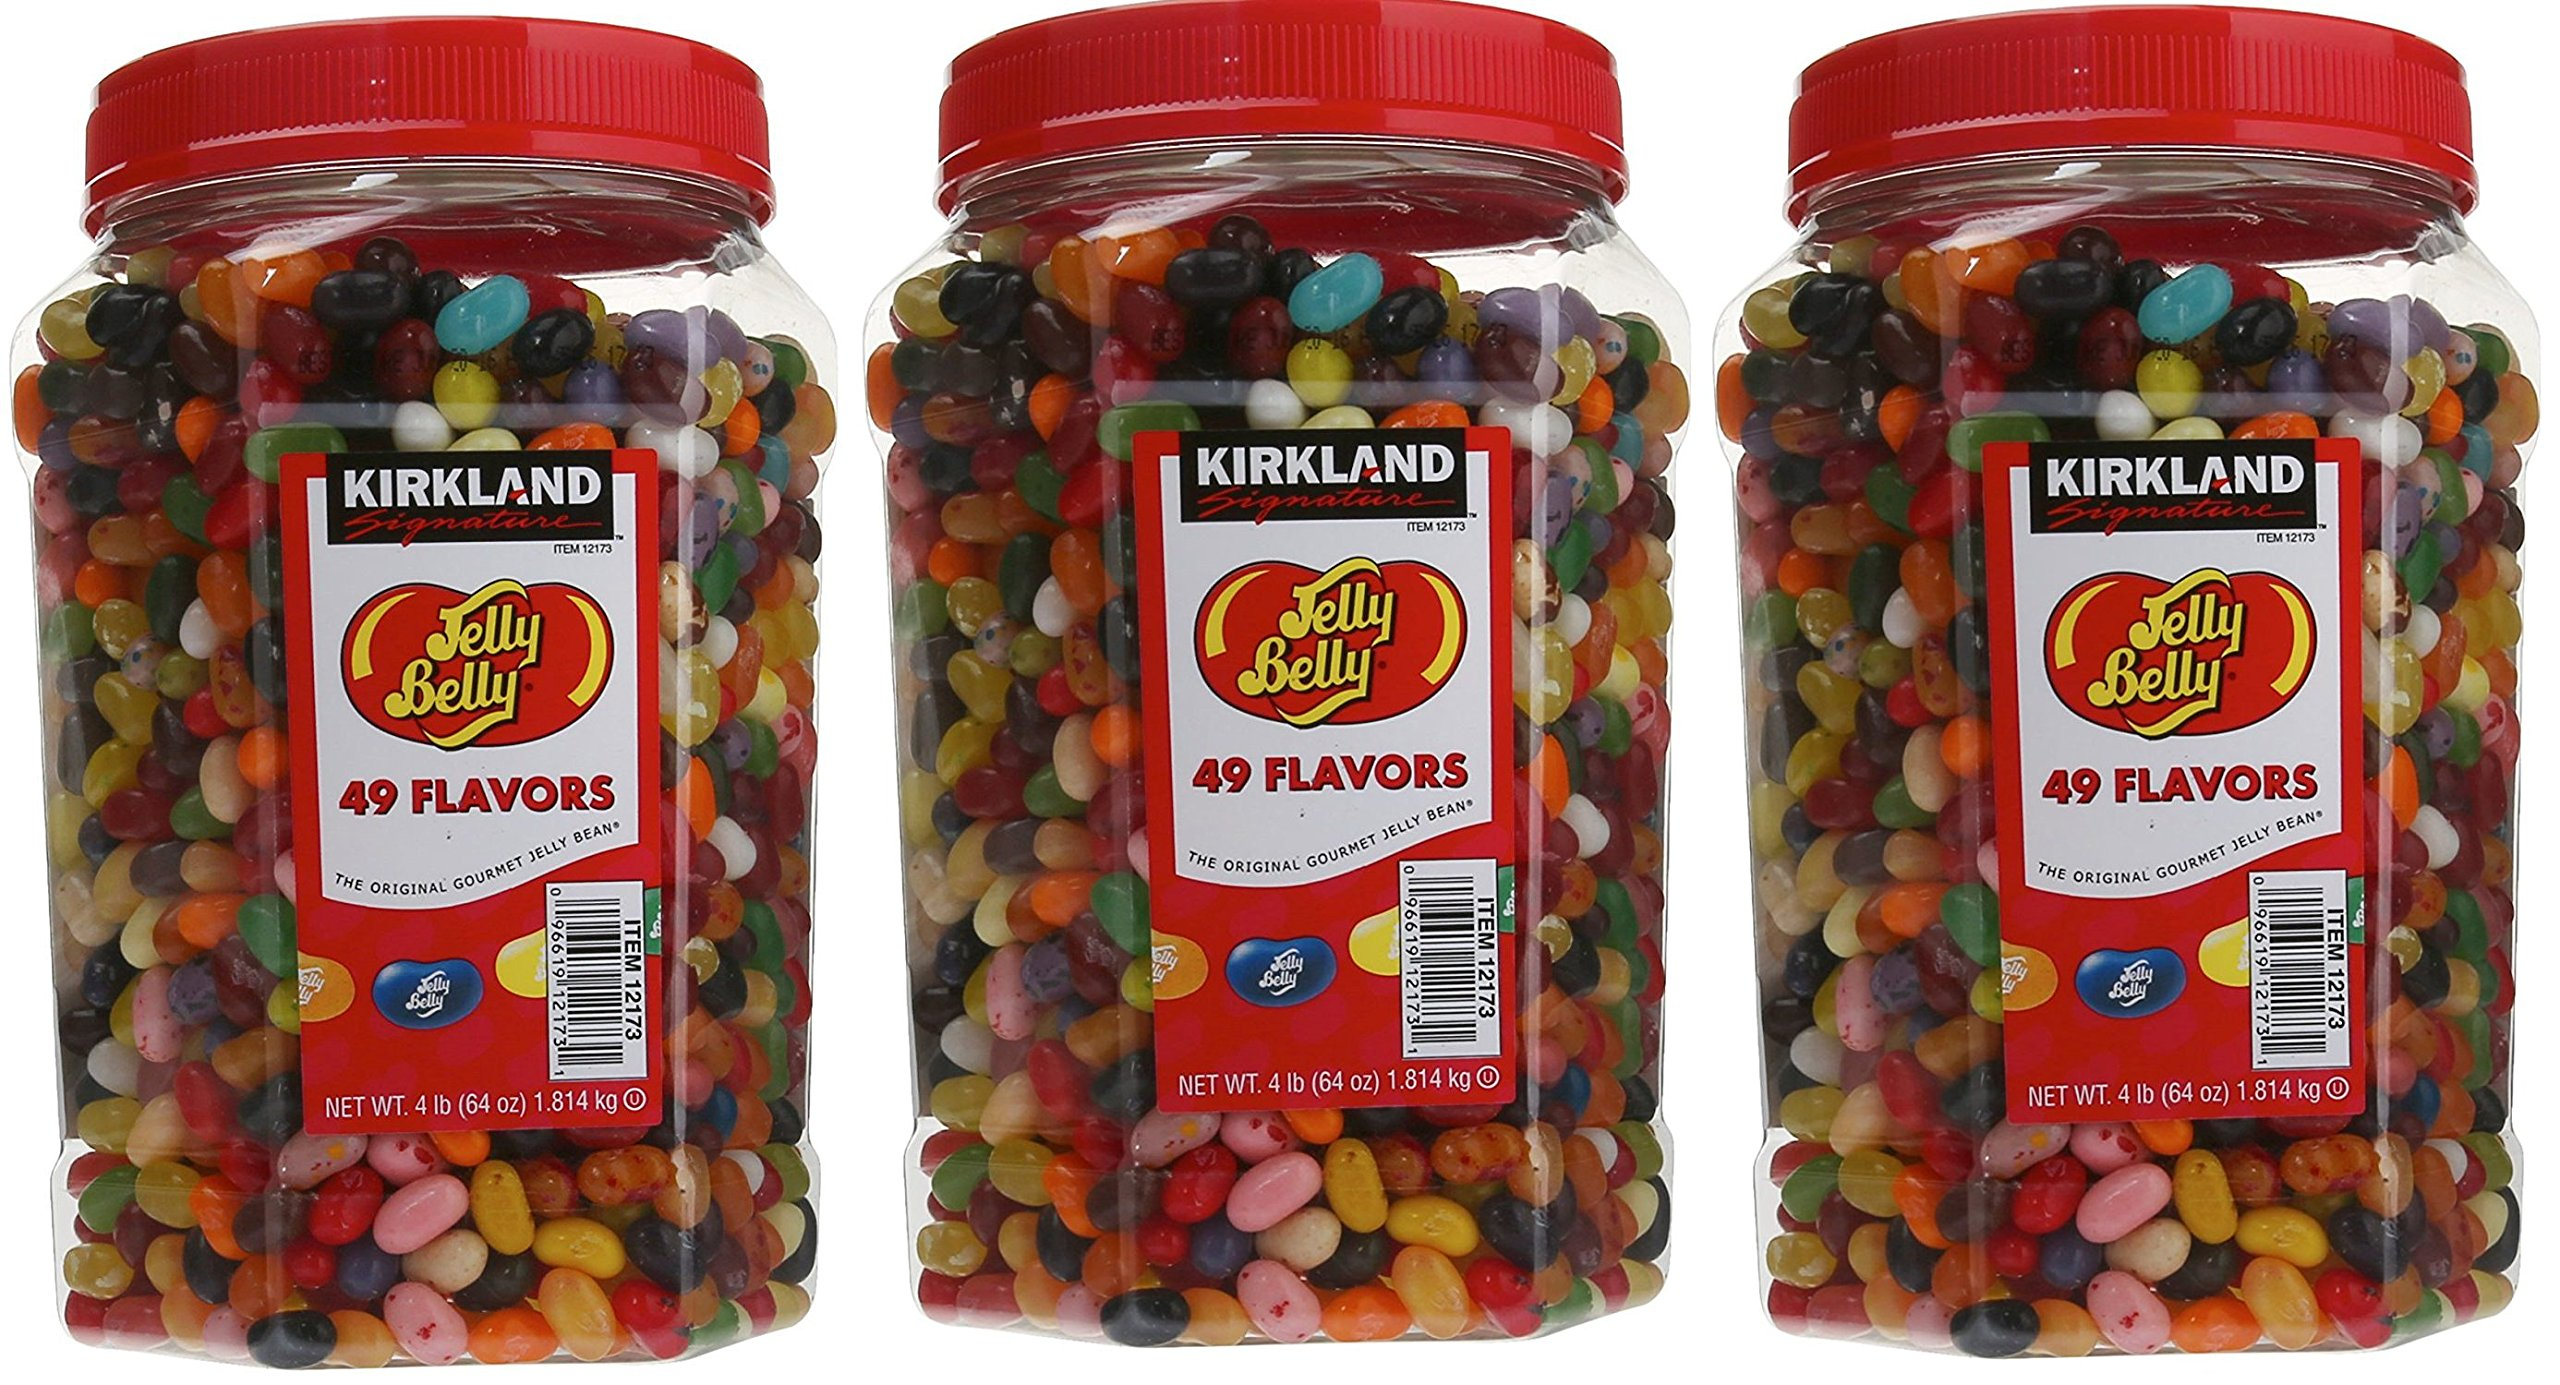 Kirkland Signature Jelly Belly Jelly Beans, 12 Pounds